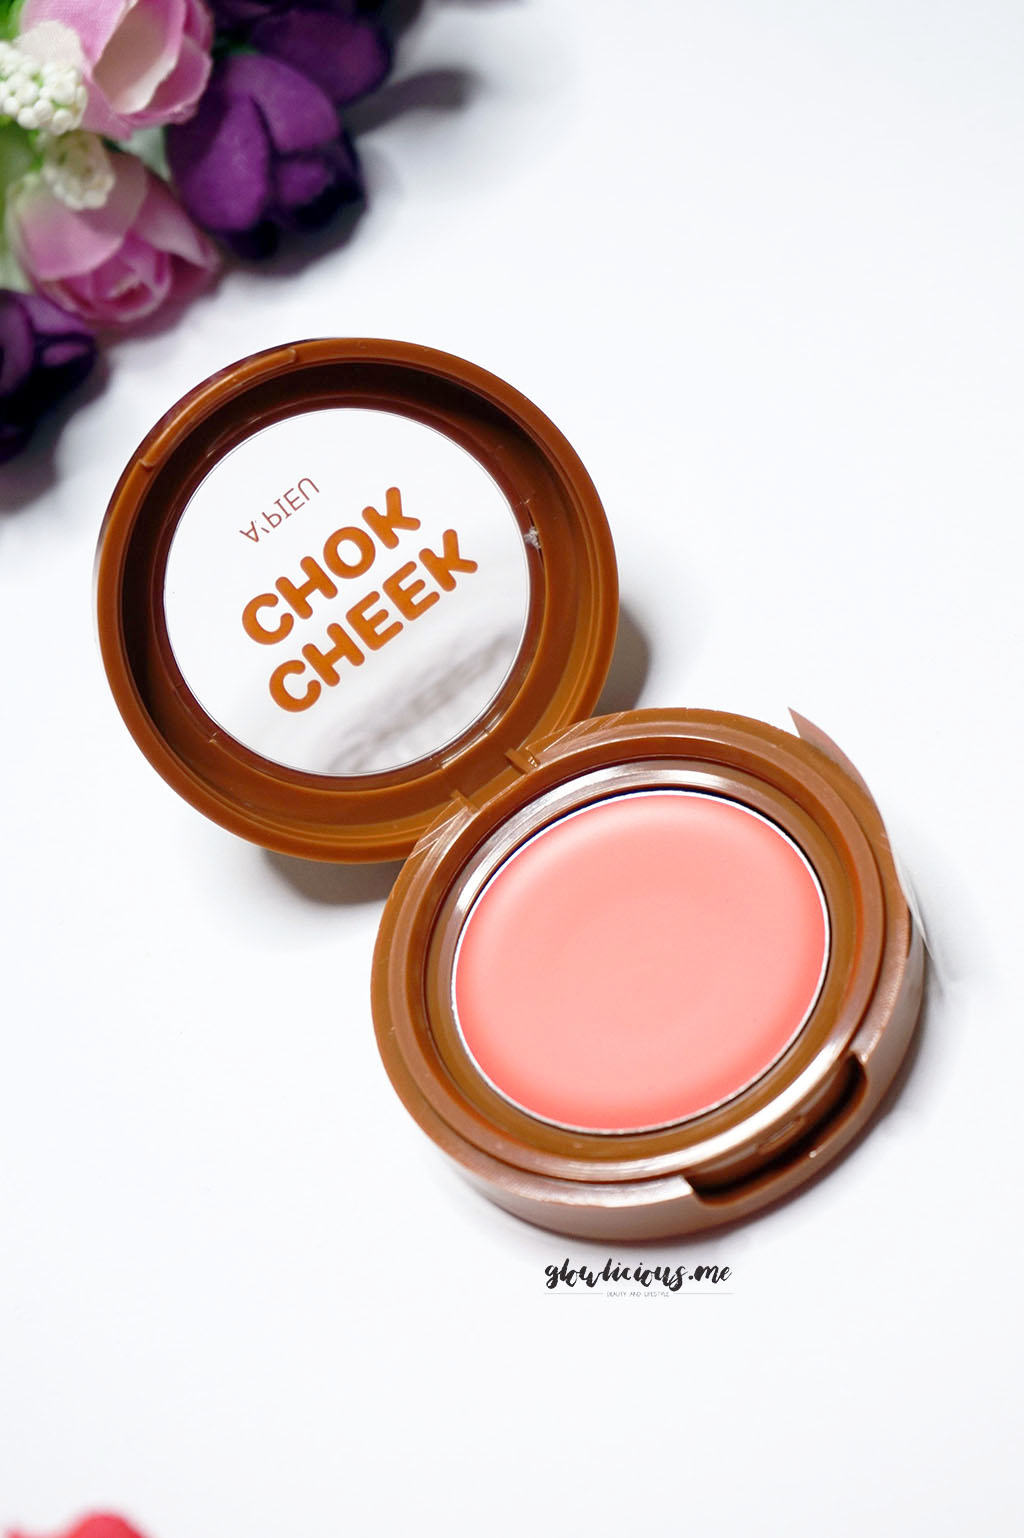 A'pieu Creamy Cheek Chok Blusher